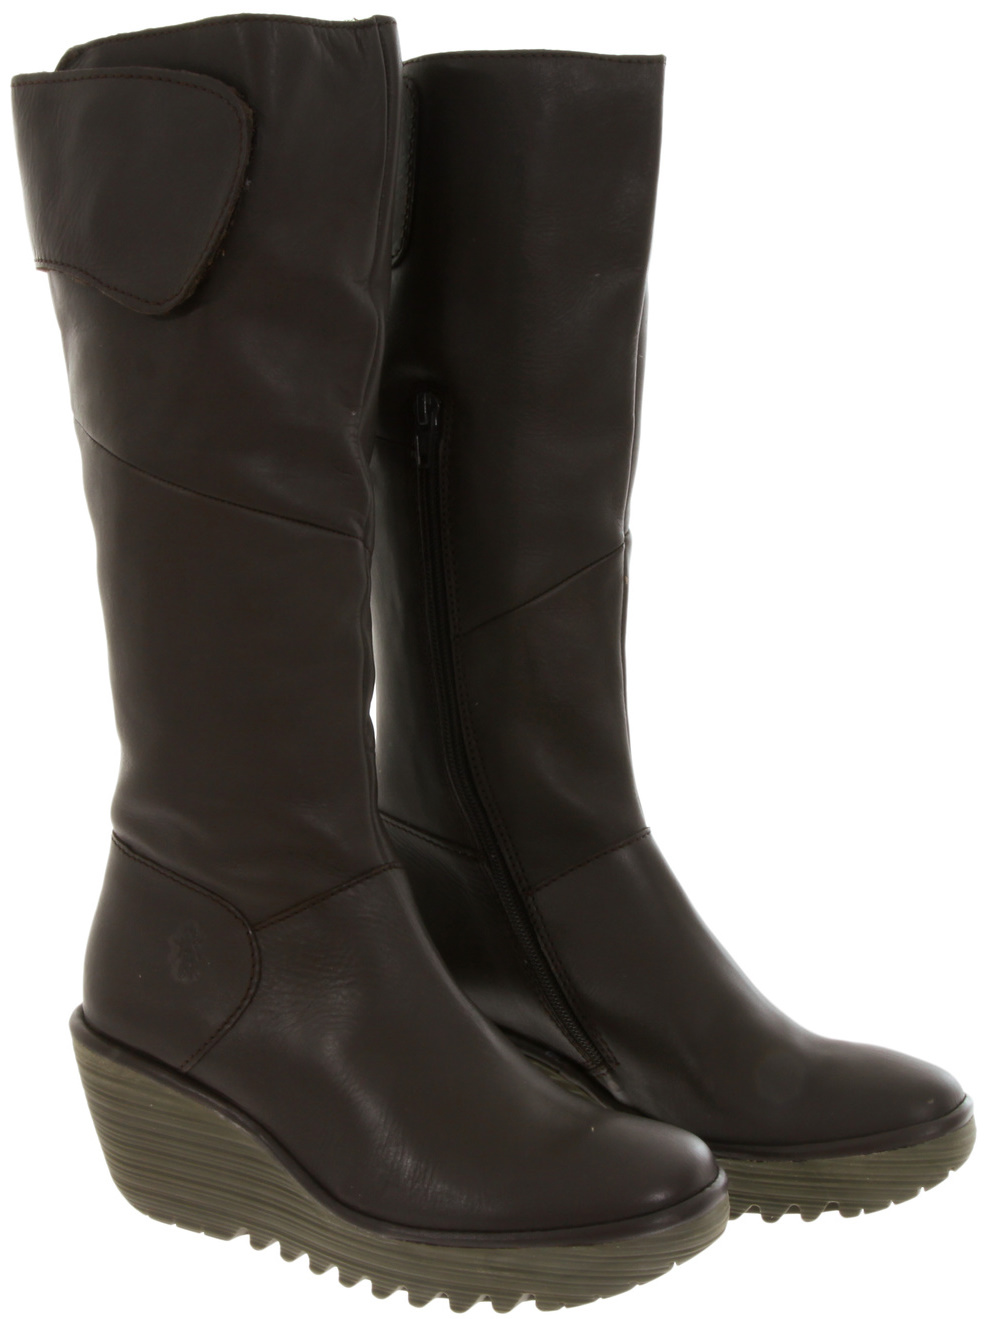 Brown Women's Boots: Find the latest styles of Shoes from dnxvvyut.ml Your Online Women's Shoes Store! Get 5% in rewards with Club O! Journee Collection Women's Kendel Faux Leather Lace-up Buckle Combat Boots. 52 Reviews. SALE. More Options. Quick View. Sale $ 29 - $